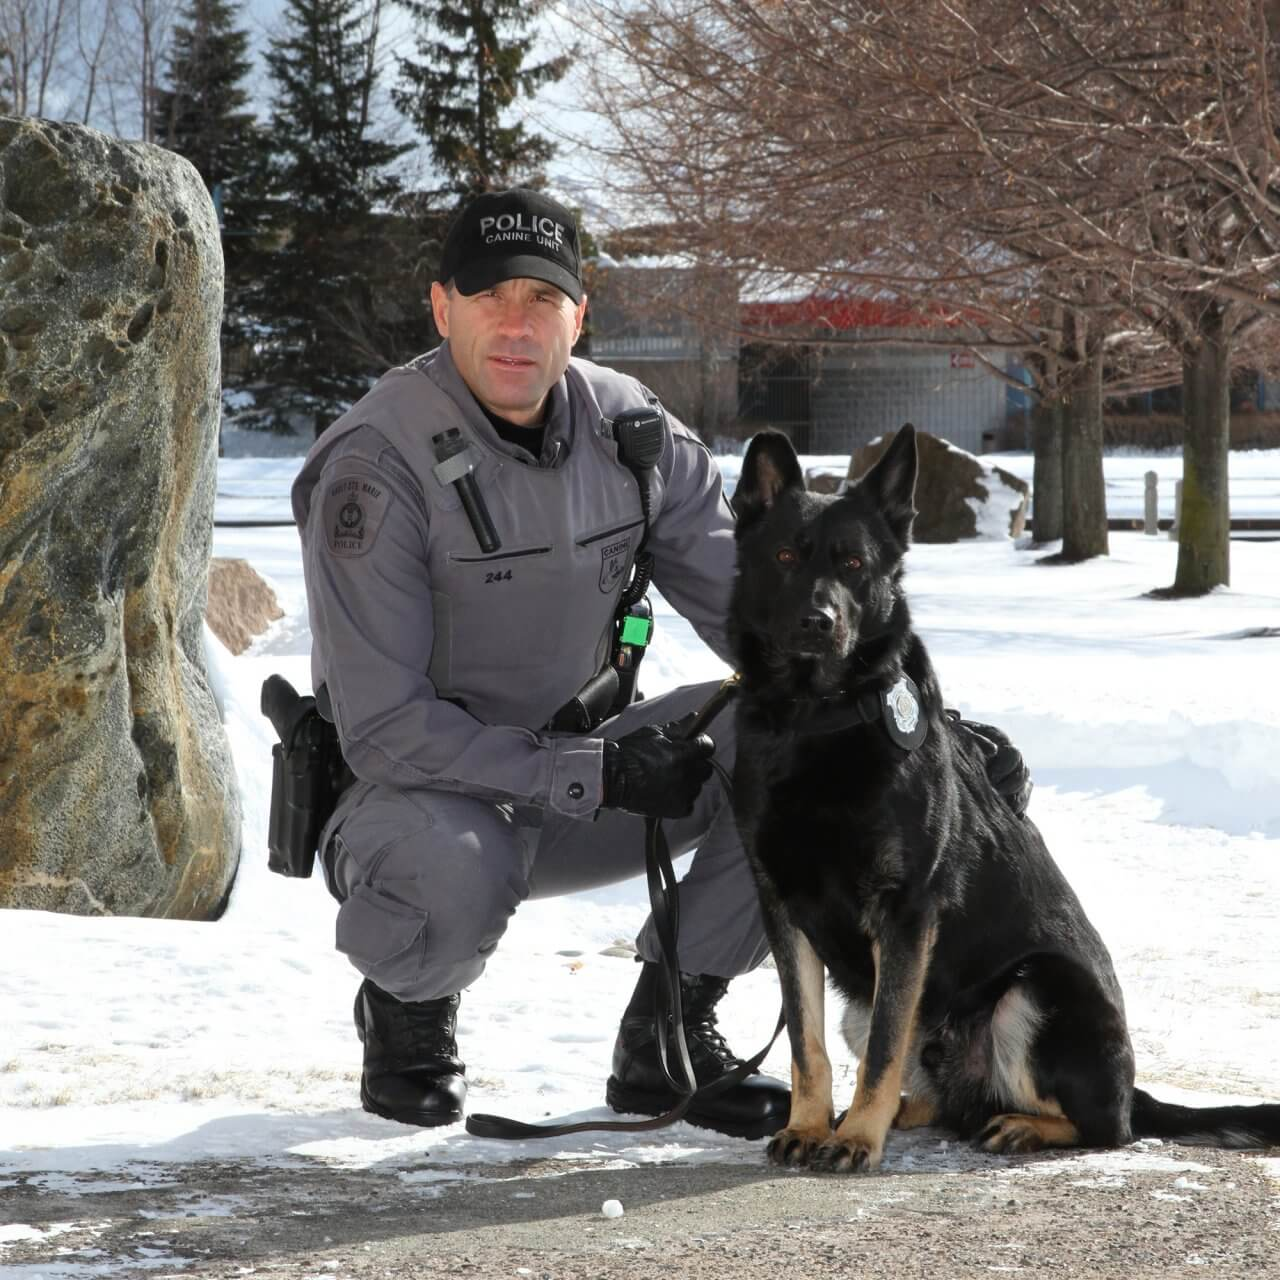 Cst. Turco & Justice